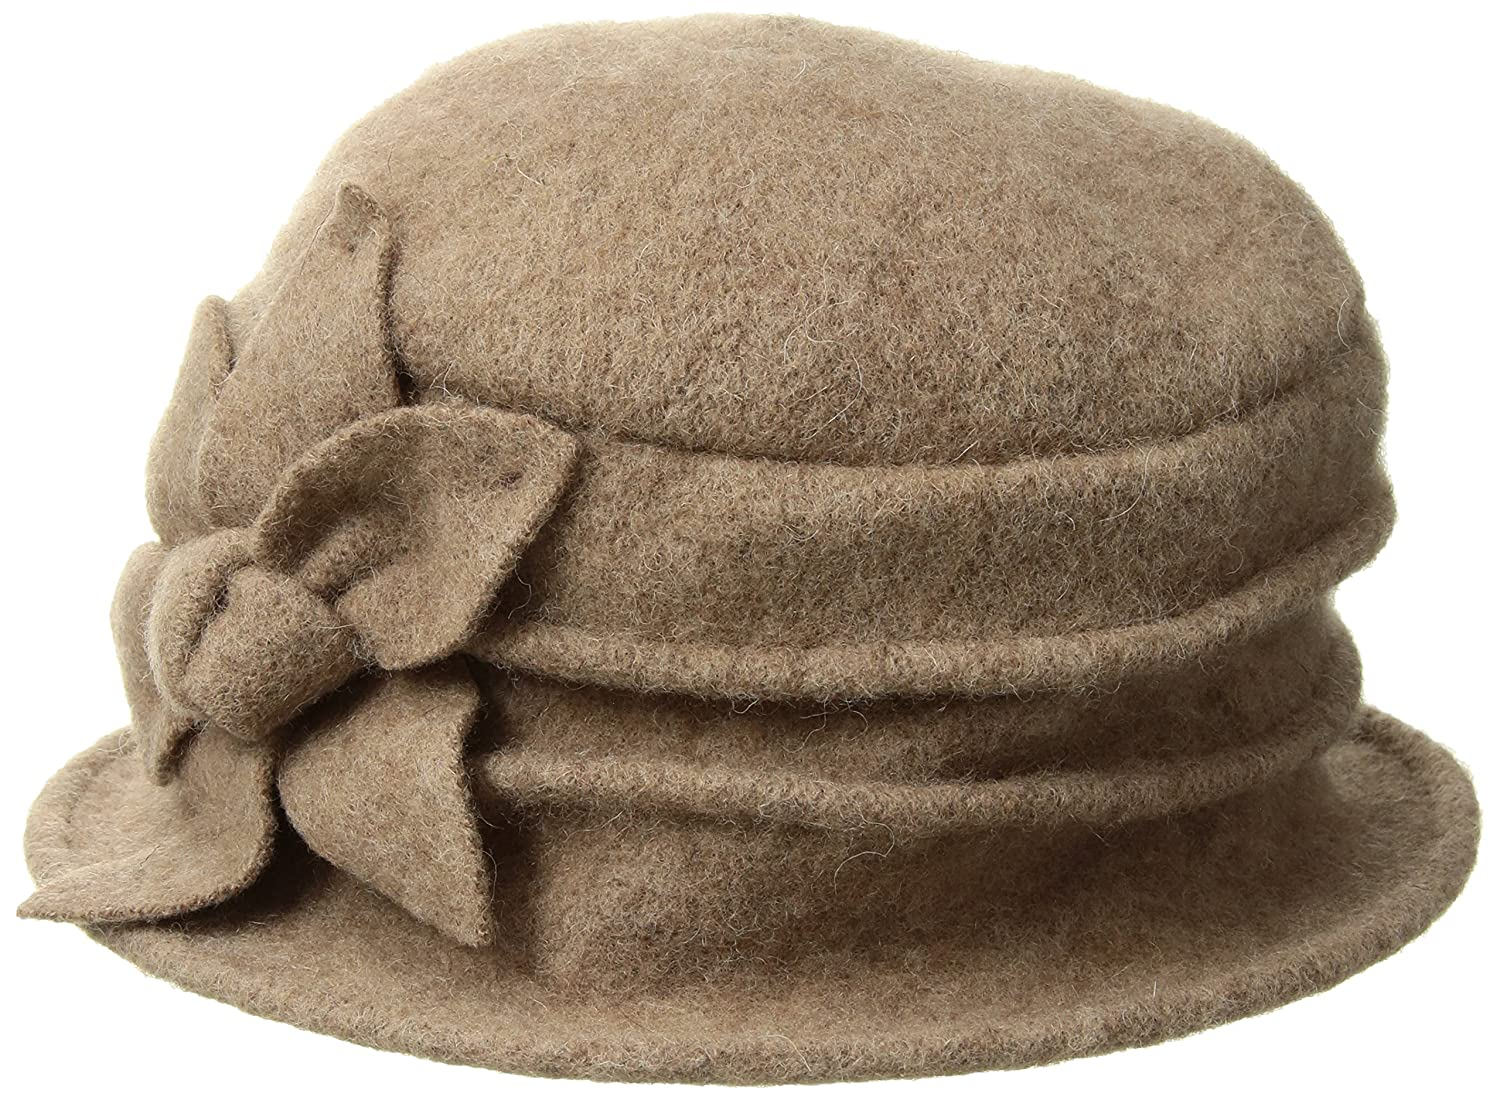 8be56bddfb5 Dahlia Womens Daisy Flower Wool Cloche Bucket Hat HT0014WLW-BK